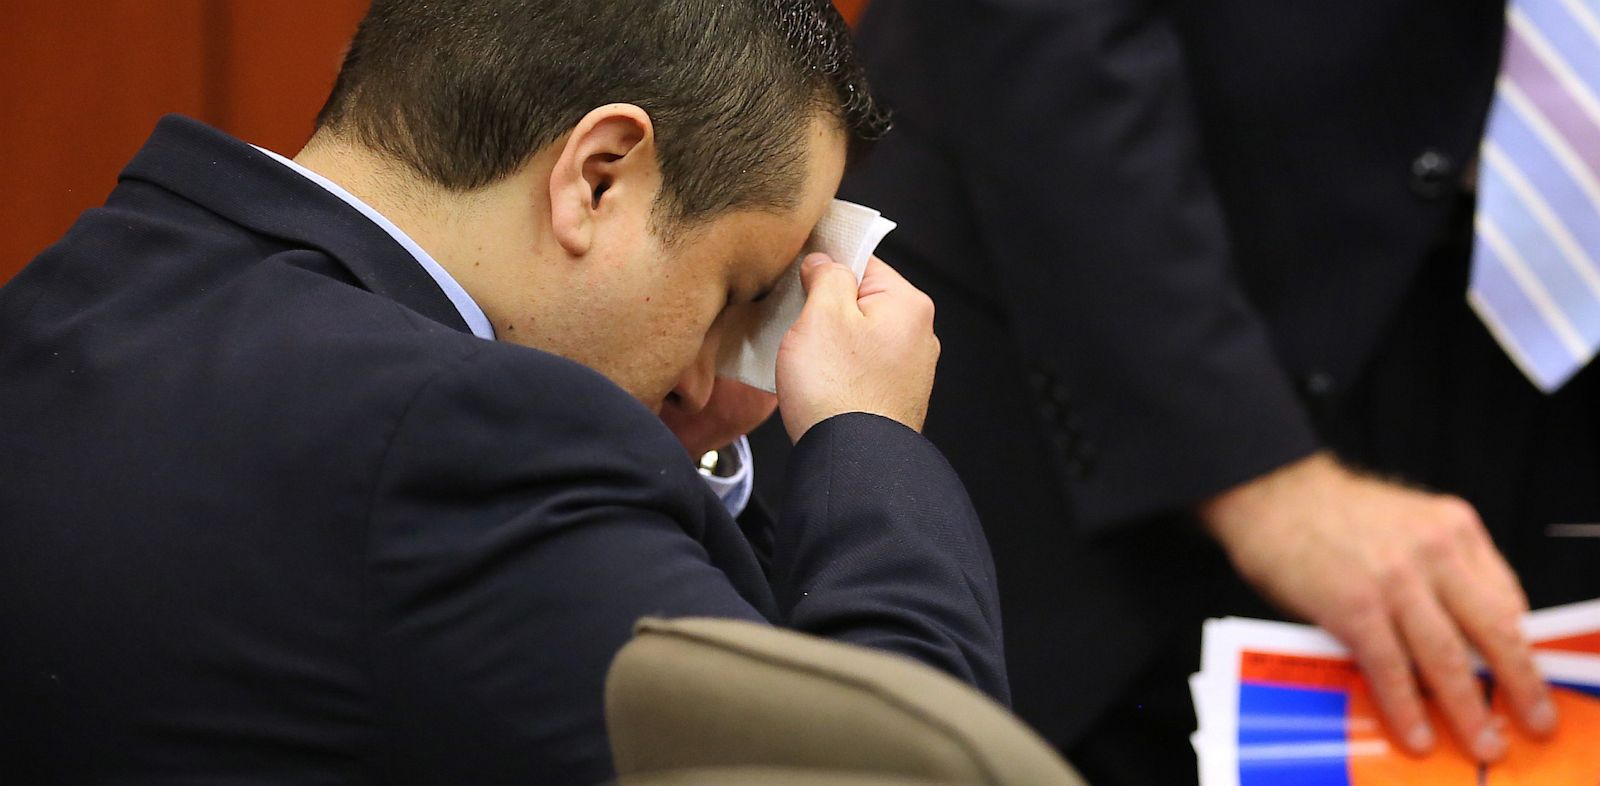 PHOTO: George Zimmerman wipes his face in the courtroom for his trial at the Seminole County Criminal Justice Center, in Sanford, Fla., July 12, 2013.